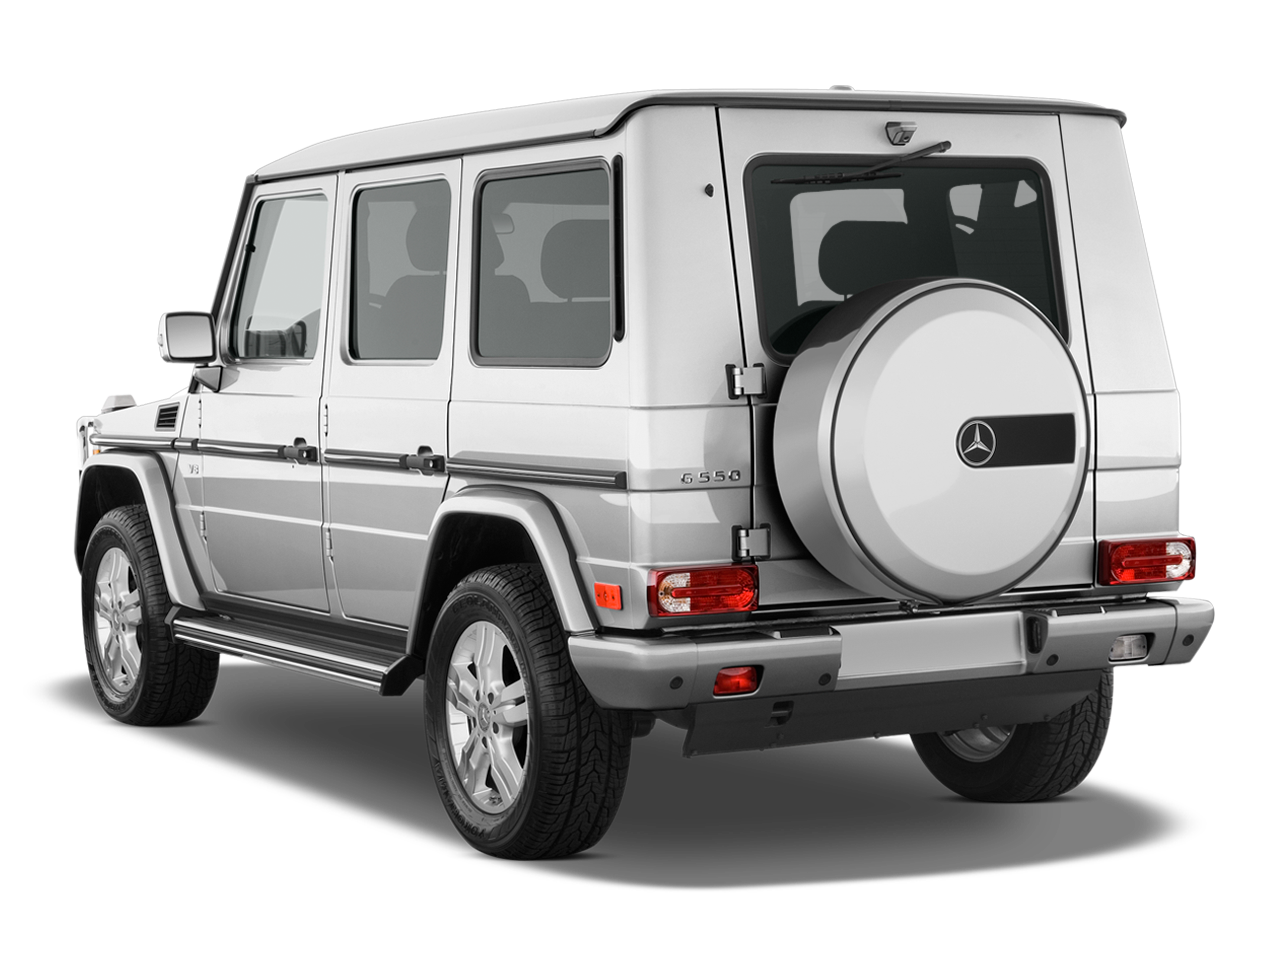 2009 mercedes benz g550 mercedes benz luxury suv review. Black Bedroom Furniture Sets. Home Design Ideas